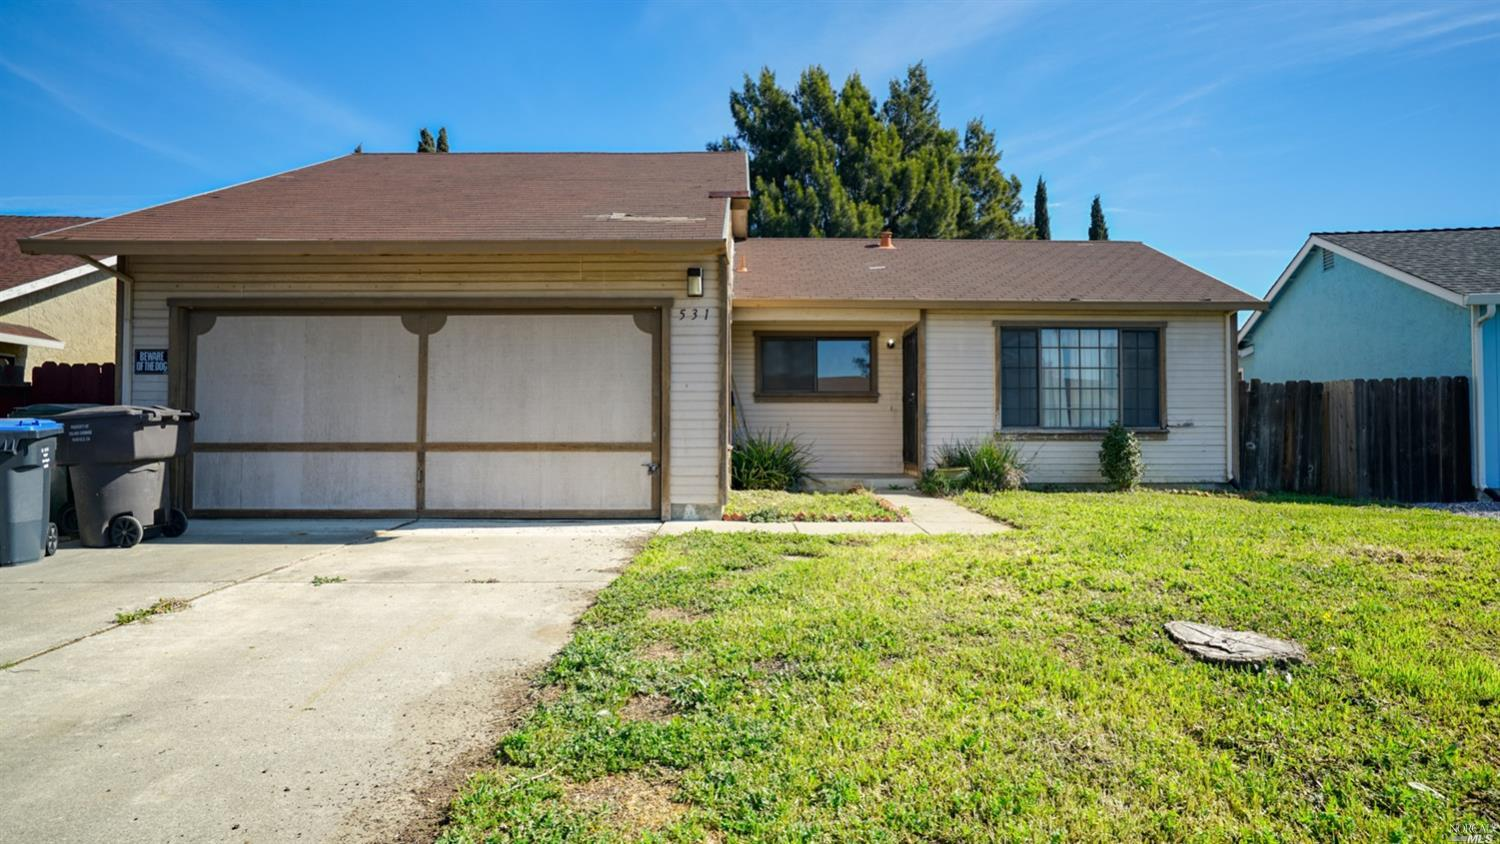 Photo of 531 Arroyo Grande Lane, Suisun City, CA 94585